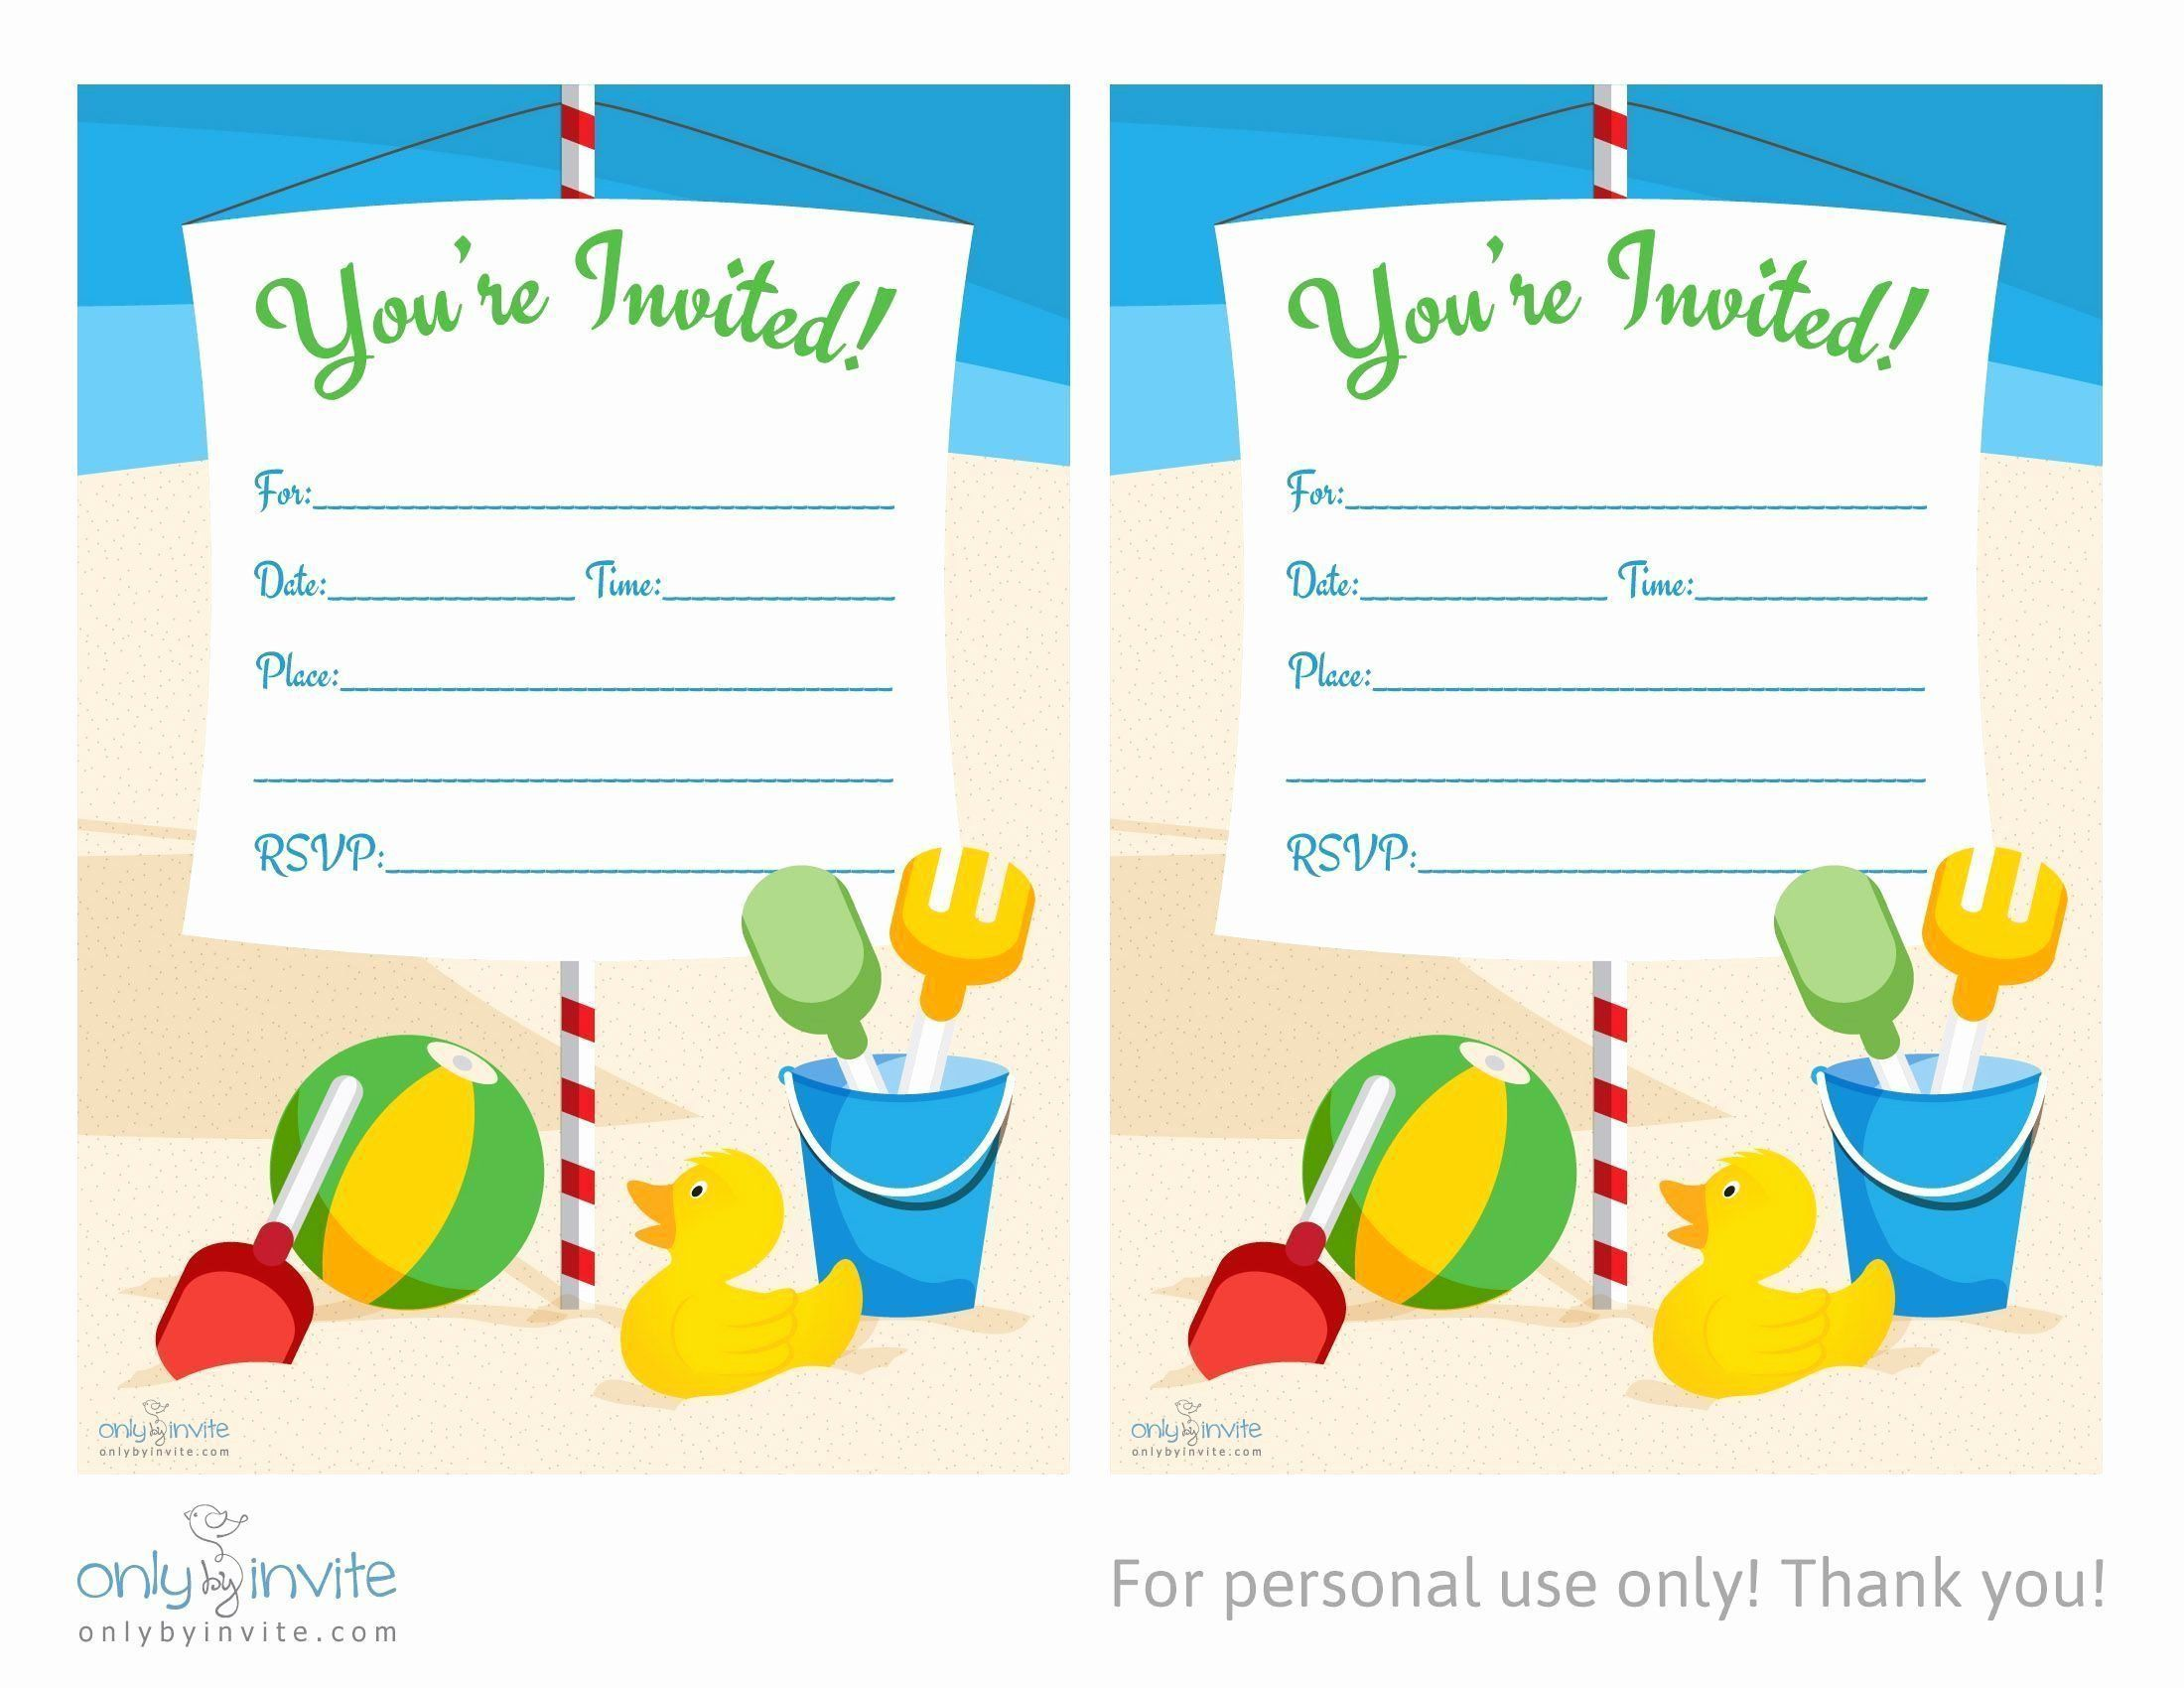 006 Excellent Birthday Invitation Template Word 2020 Concept Full